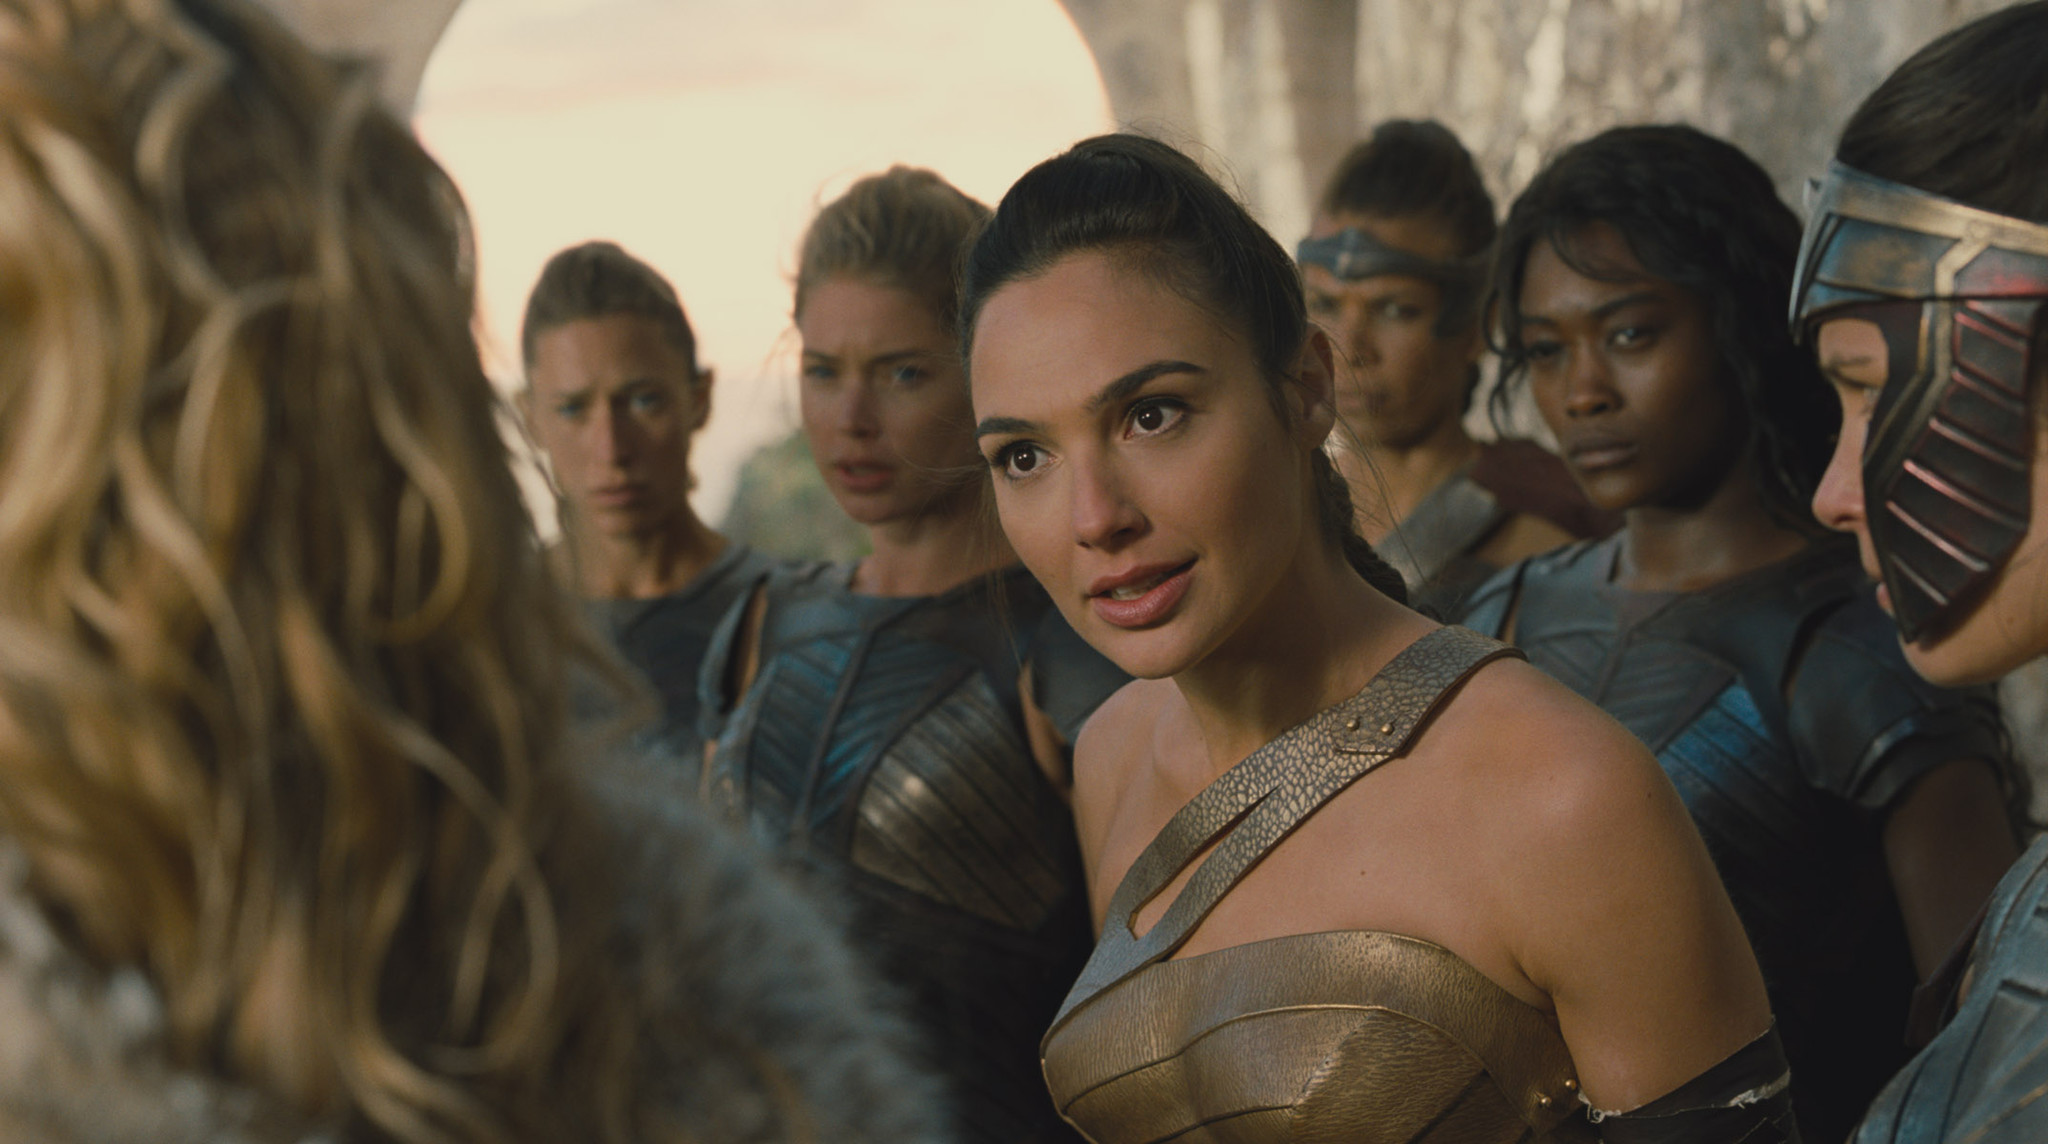 GAL GADOT as Diana in the action adventure